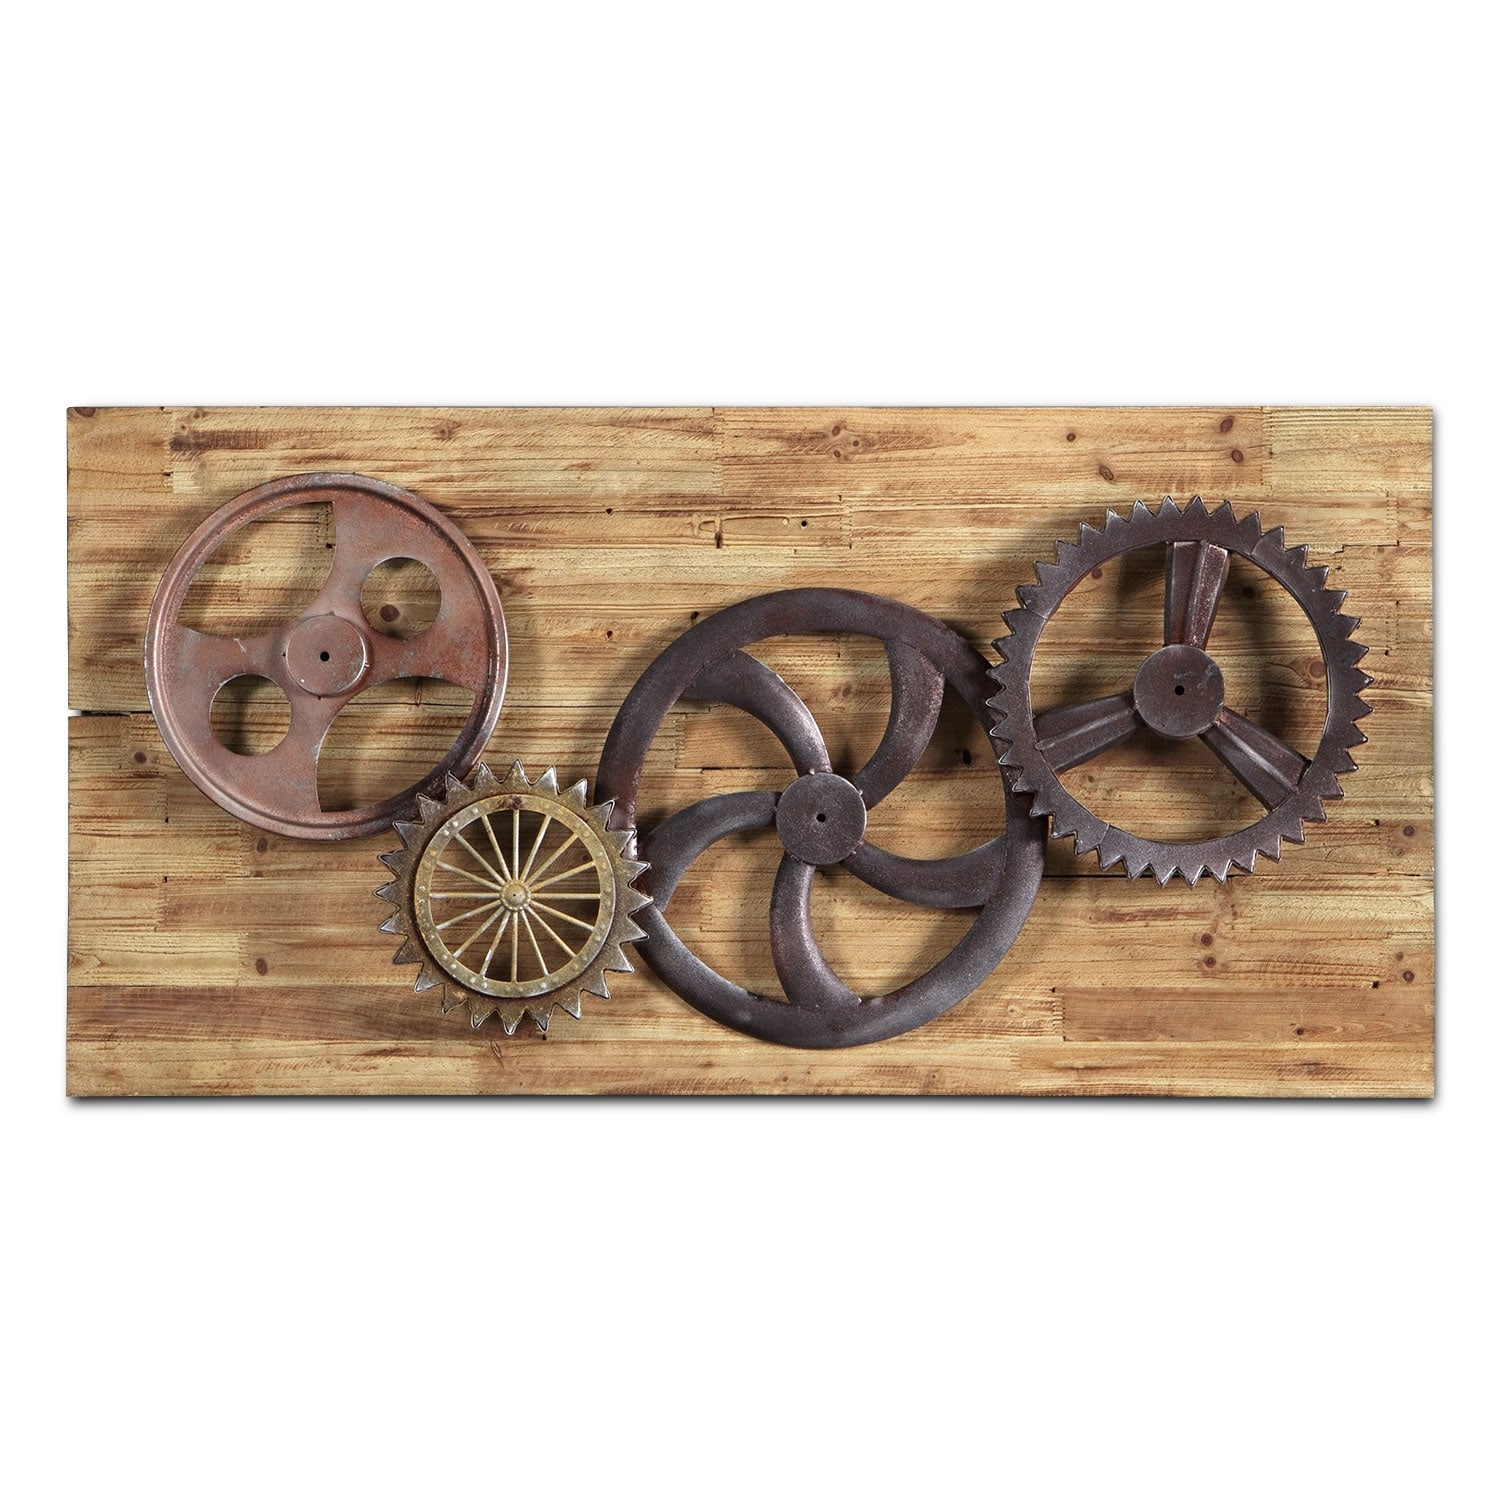 Home Accessories - Industrial Gears Wall Décor